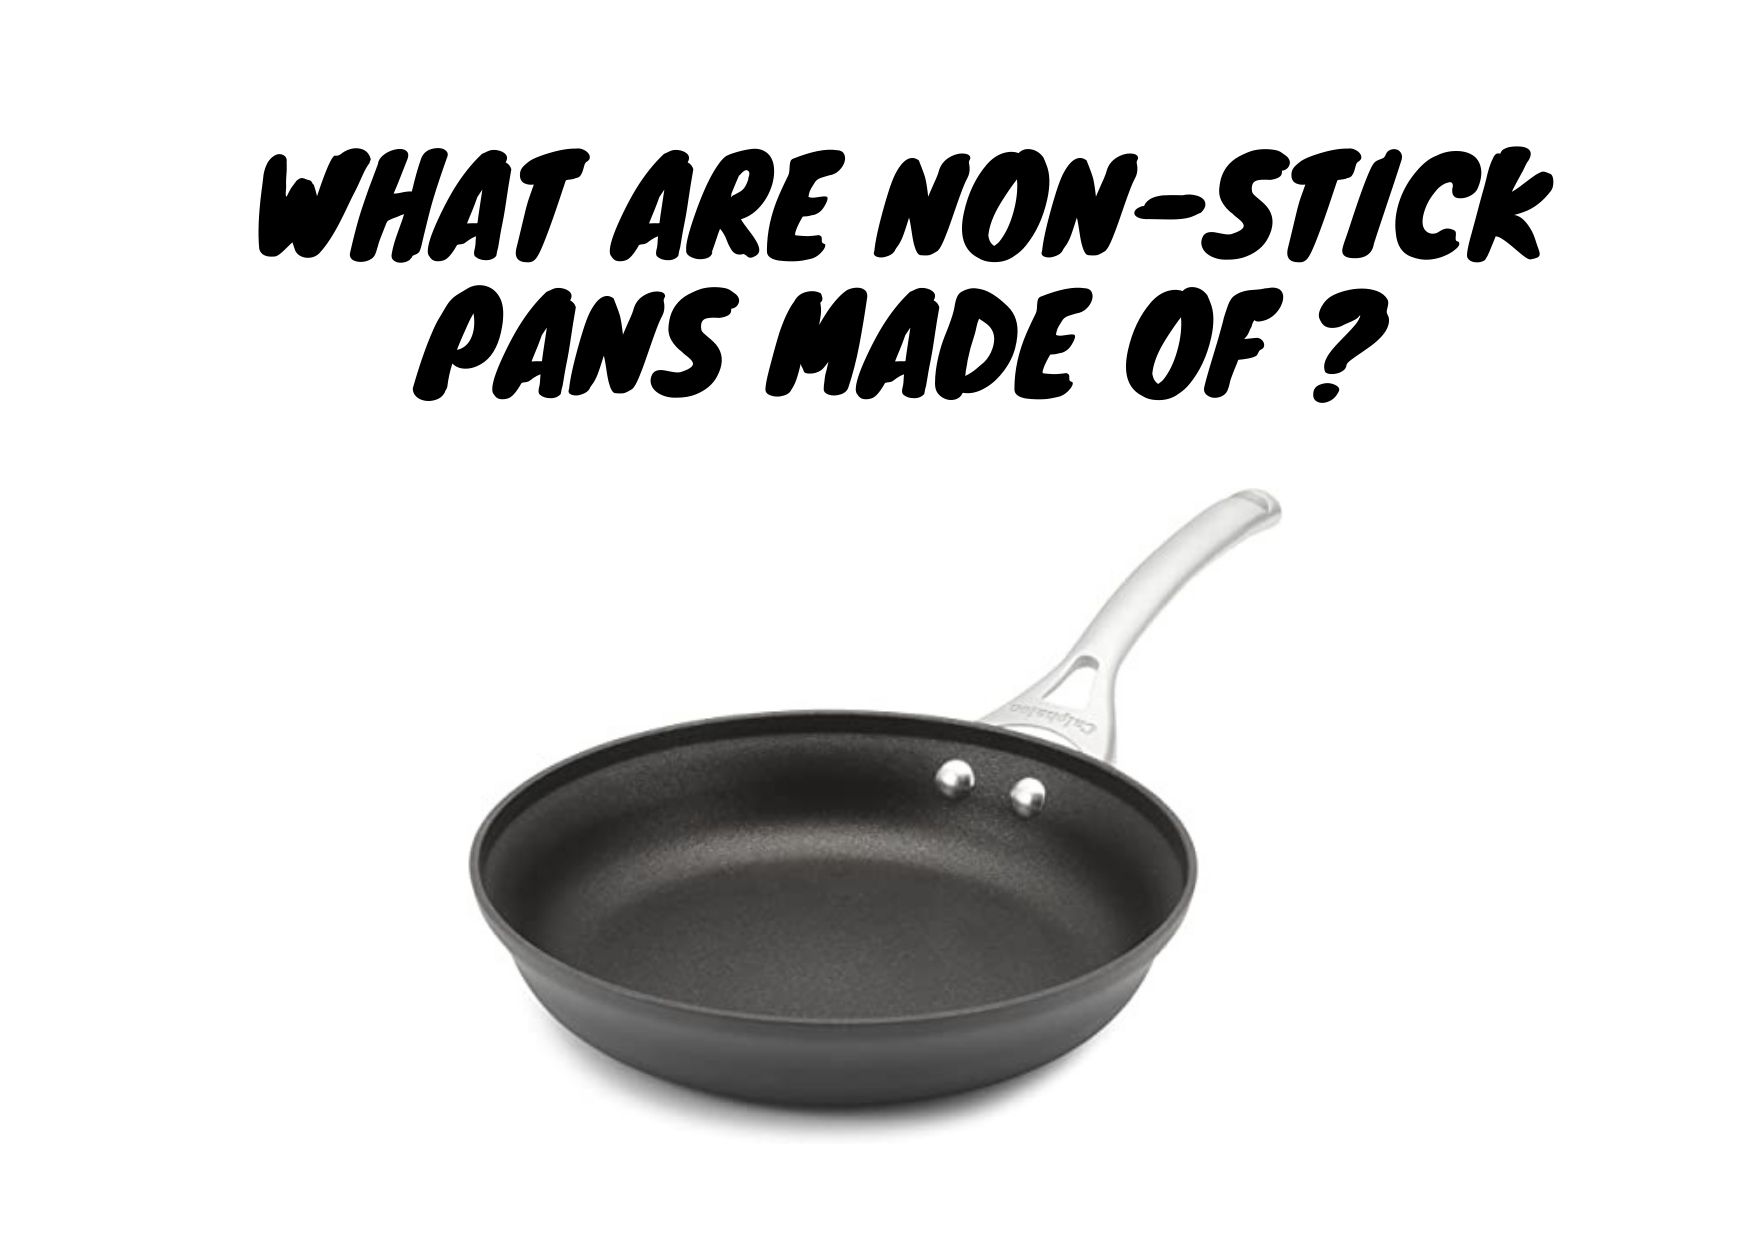 what are non-stick pans made of